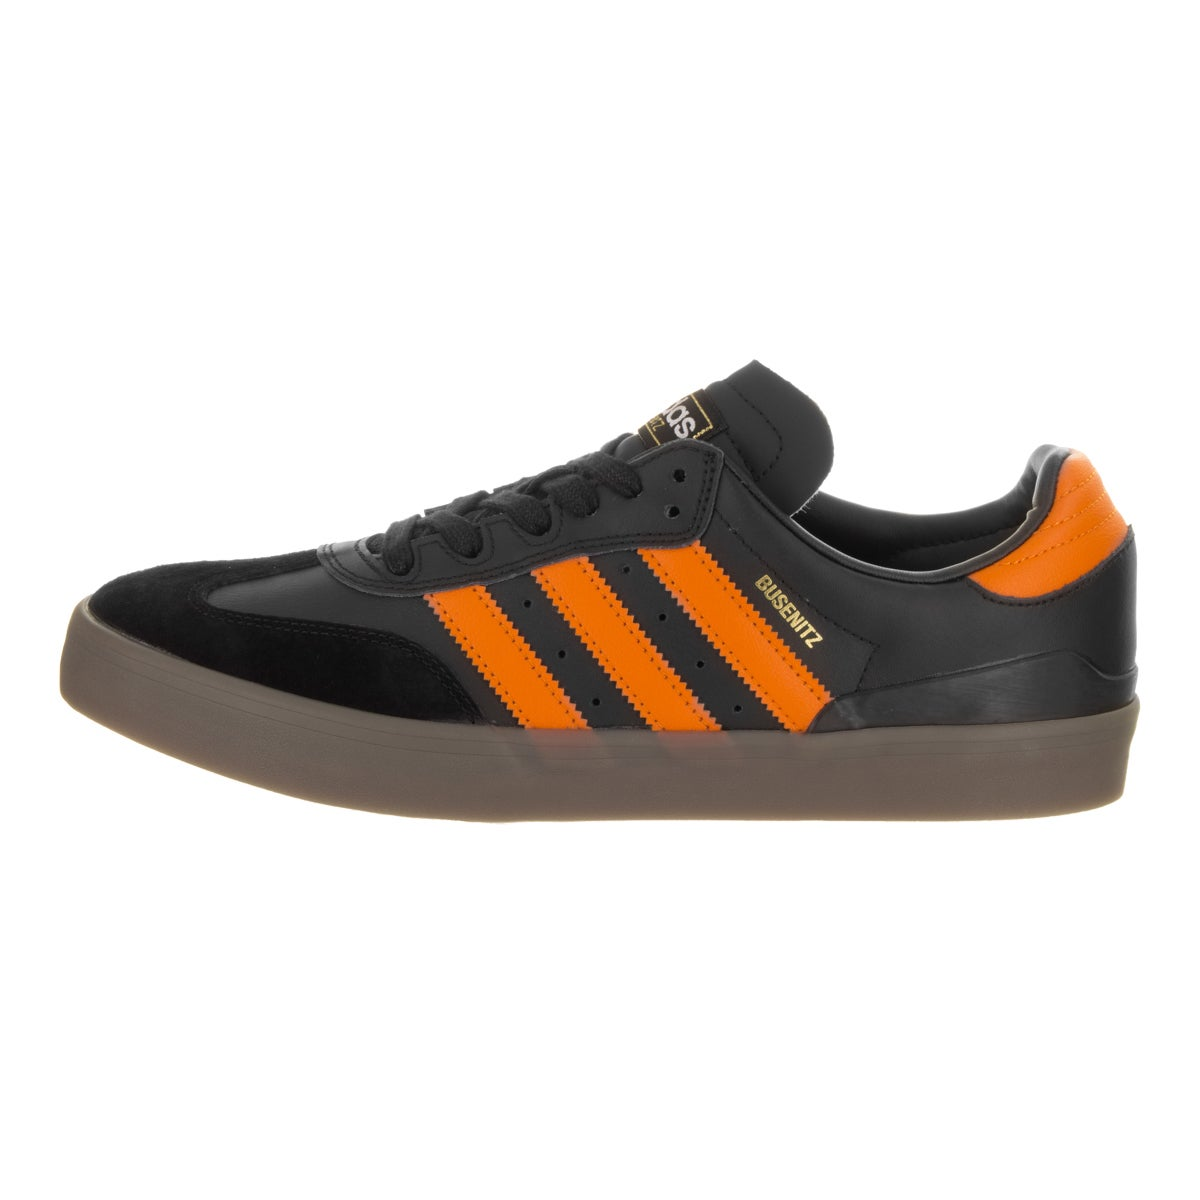 186fb8994a956 Adidas Men's Busenitz Vulc Samba Edition Black Skate Shoe